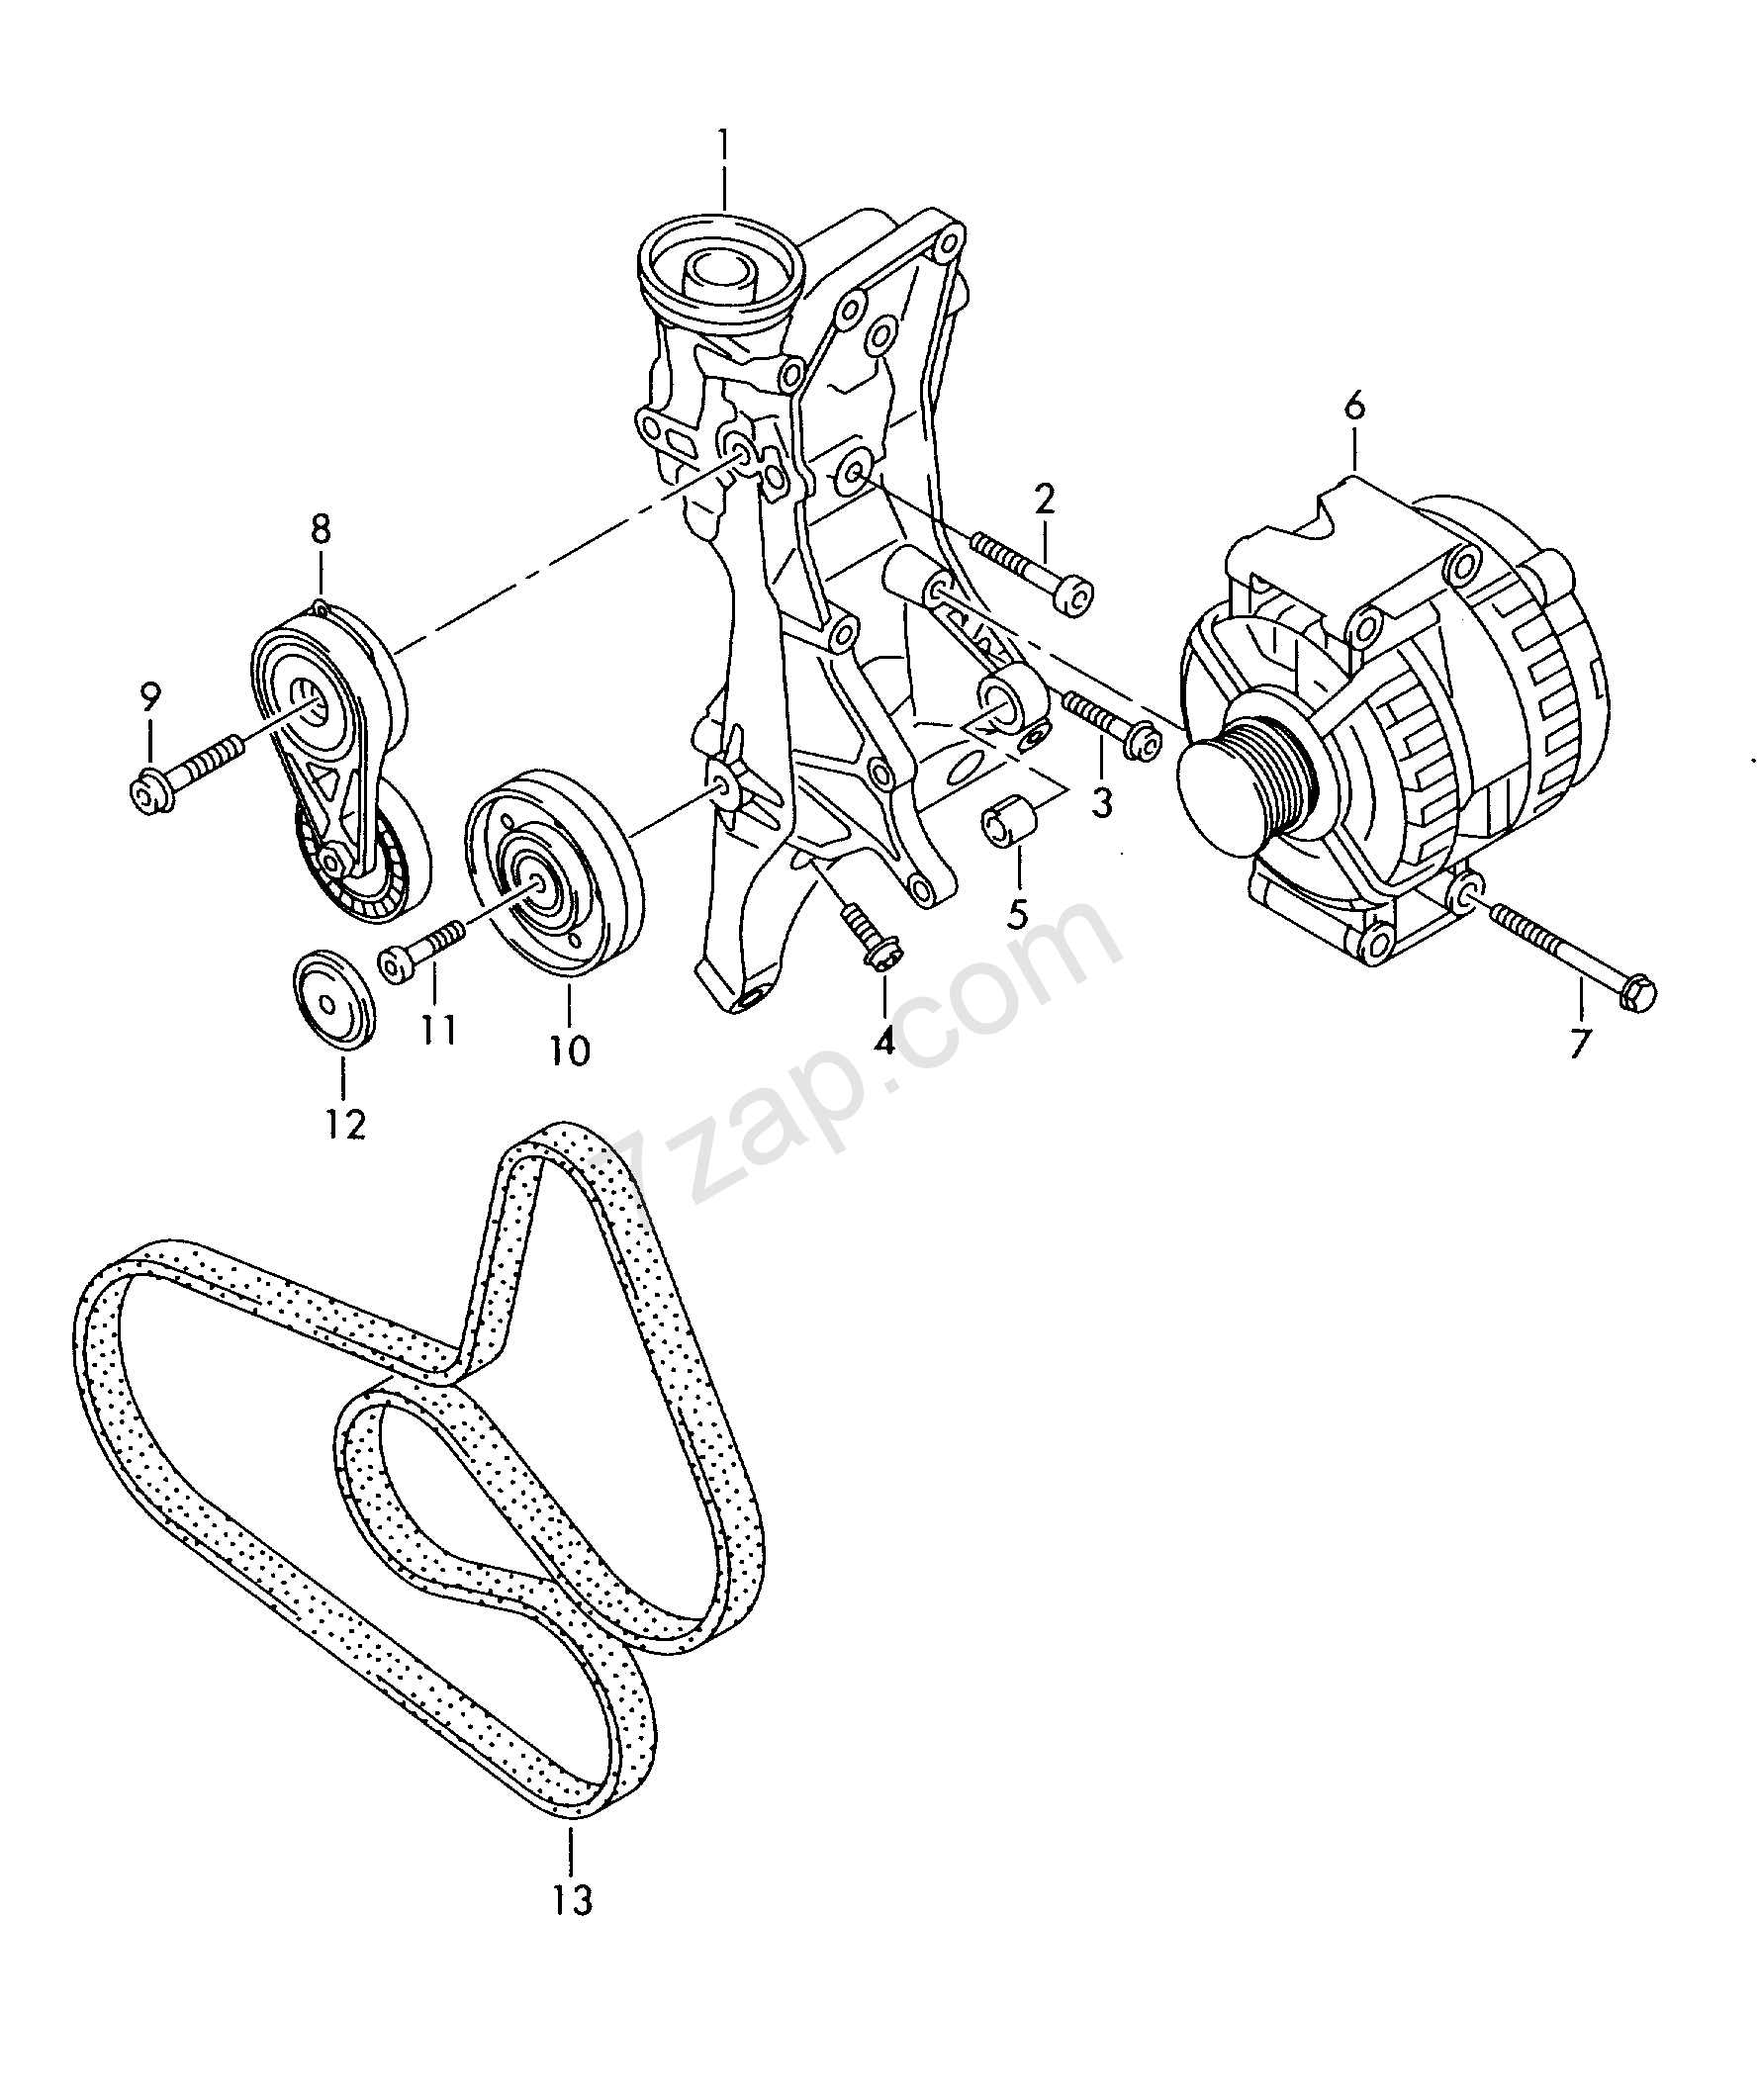 connecting and mounting parts for alternator  pol    audi a4  avant  a4  2009 year audi europa 903020